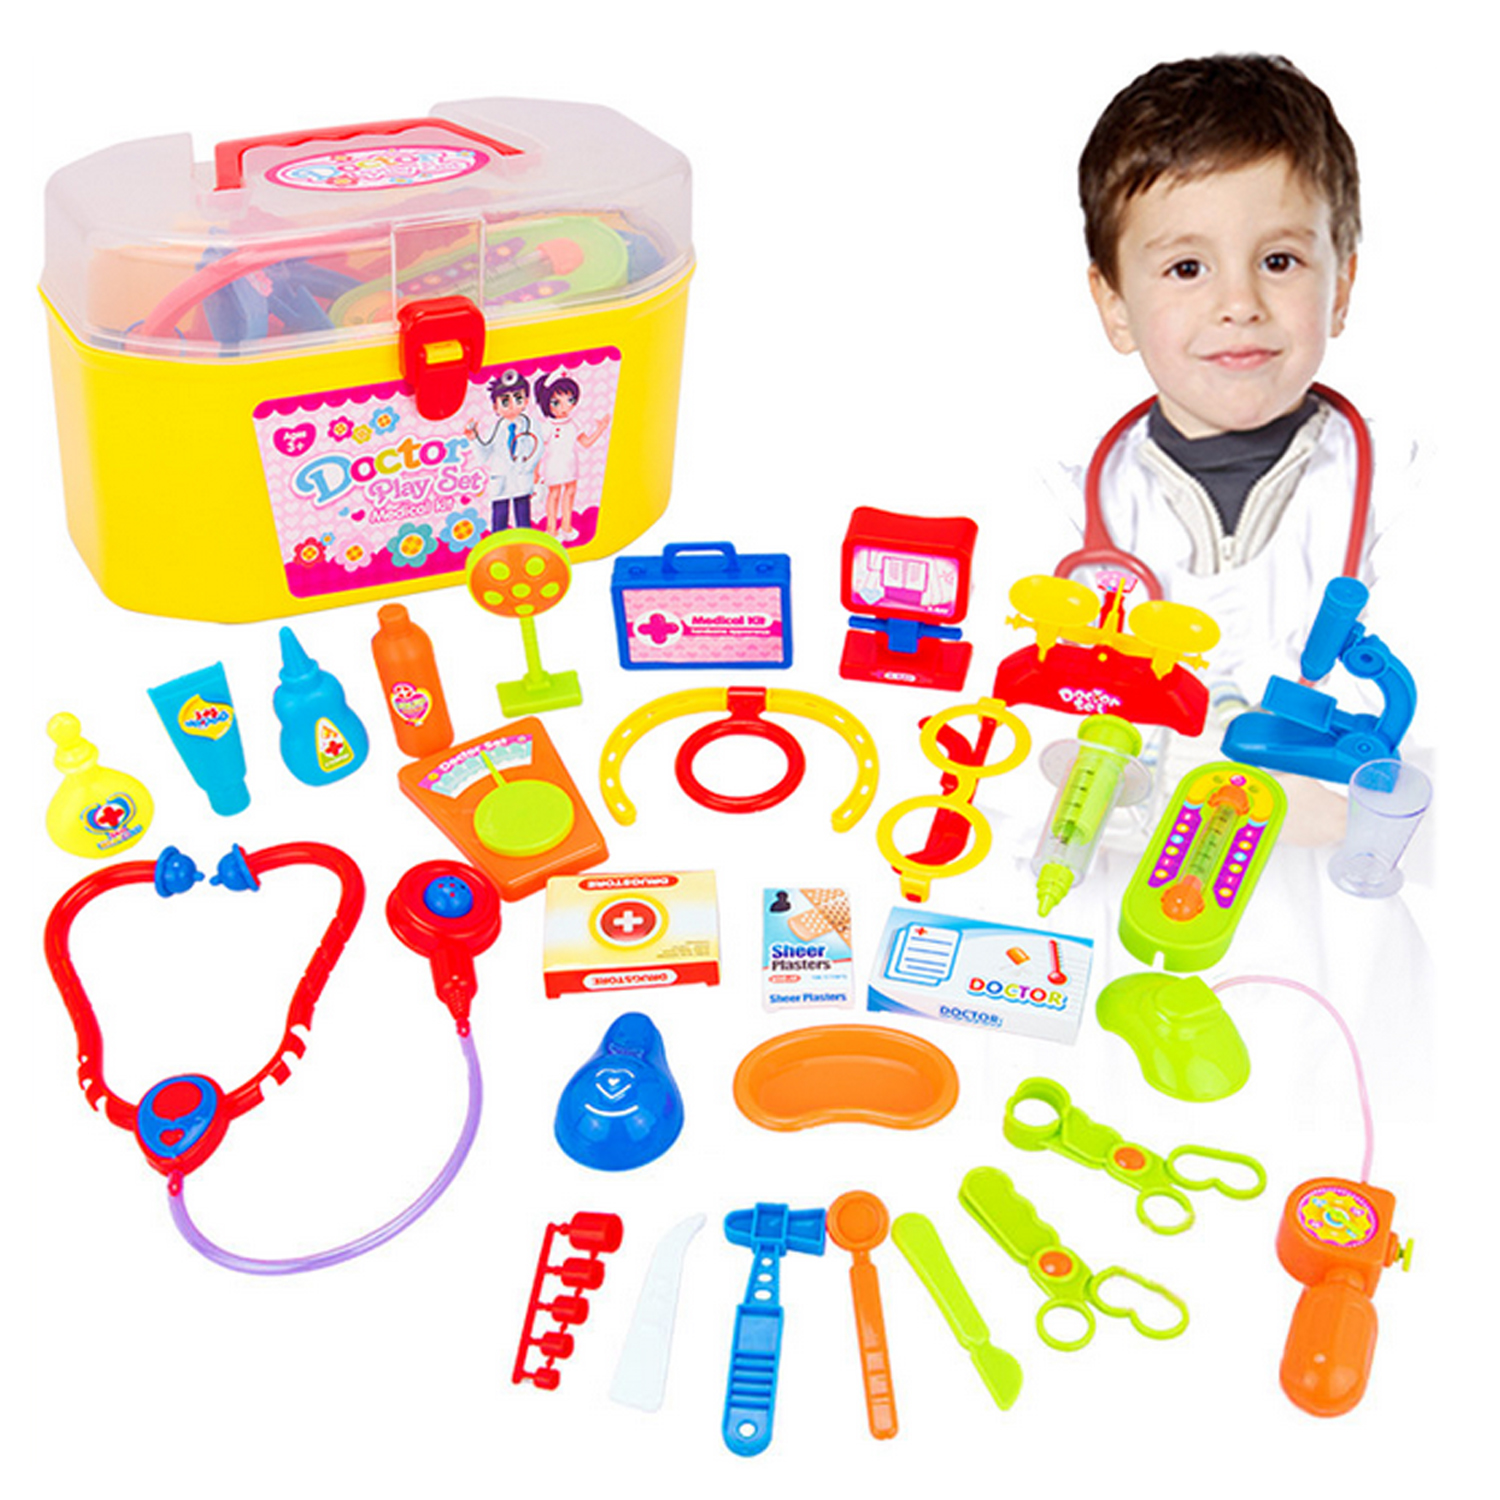 Children Kid Plastic Simulation Pretend Play Doctor Medical Toy Kit Educational Toy Set with Case